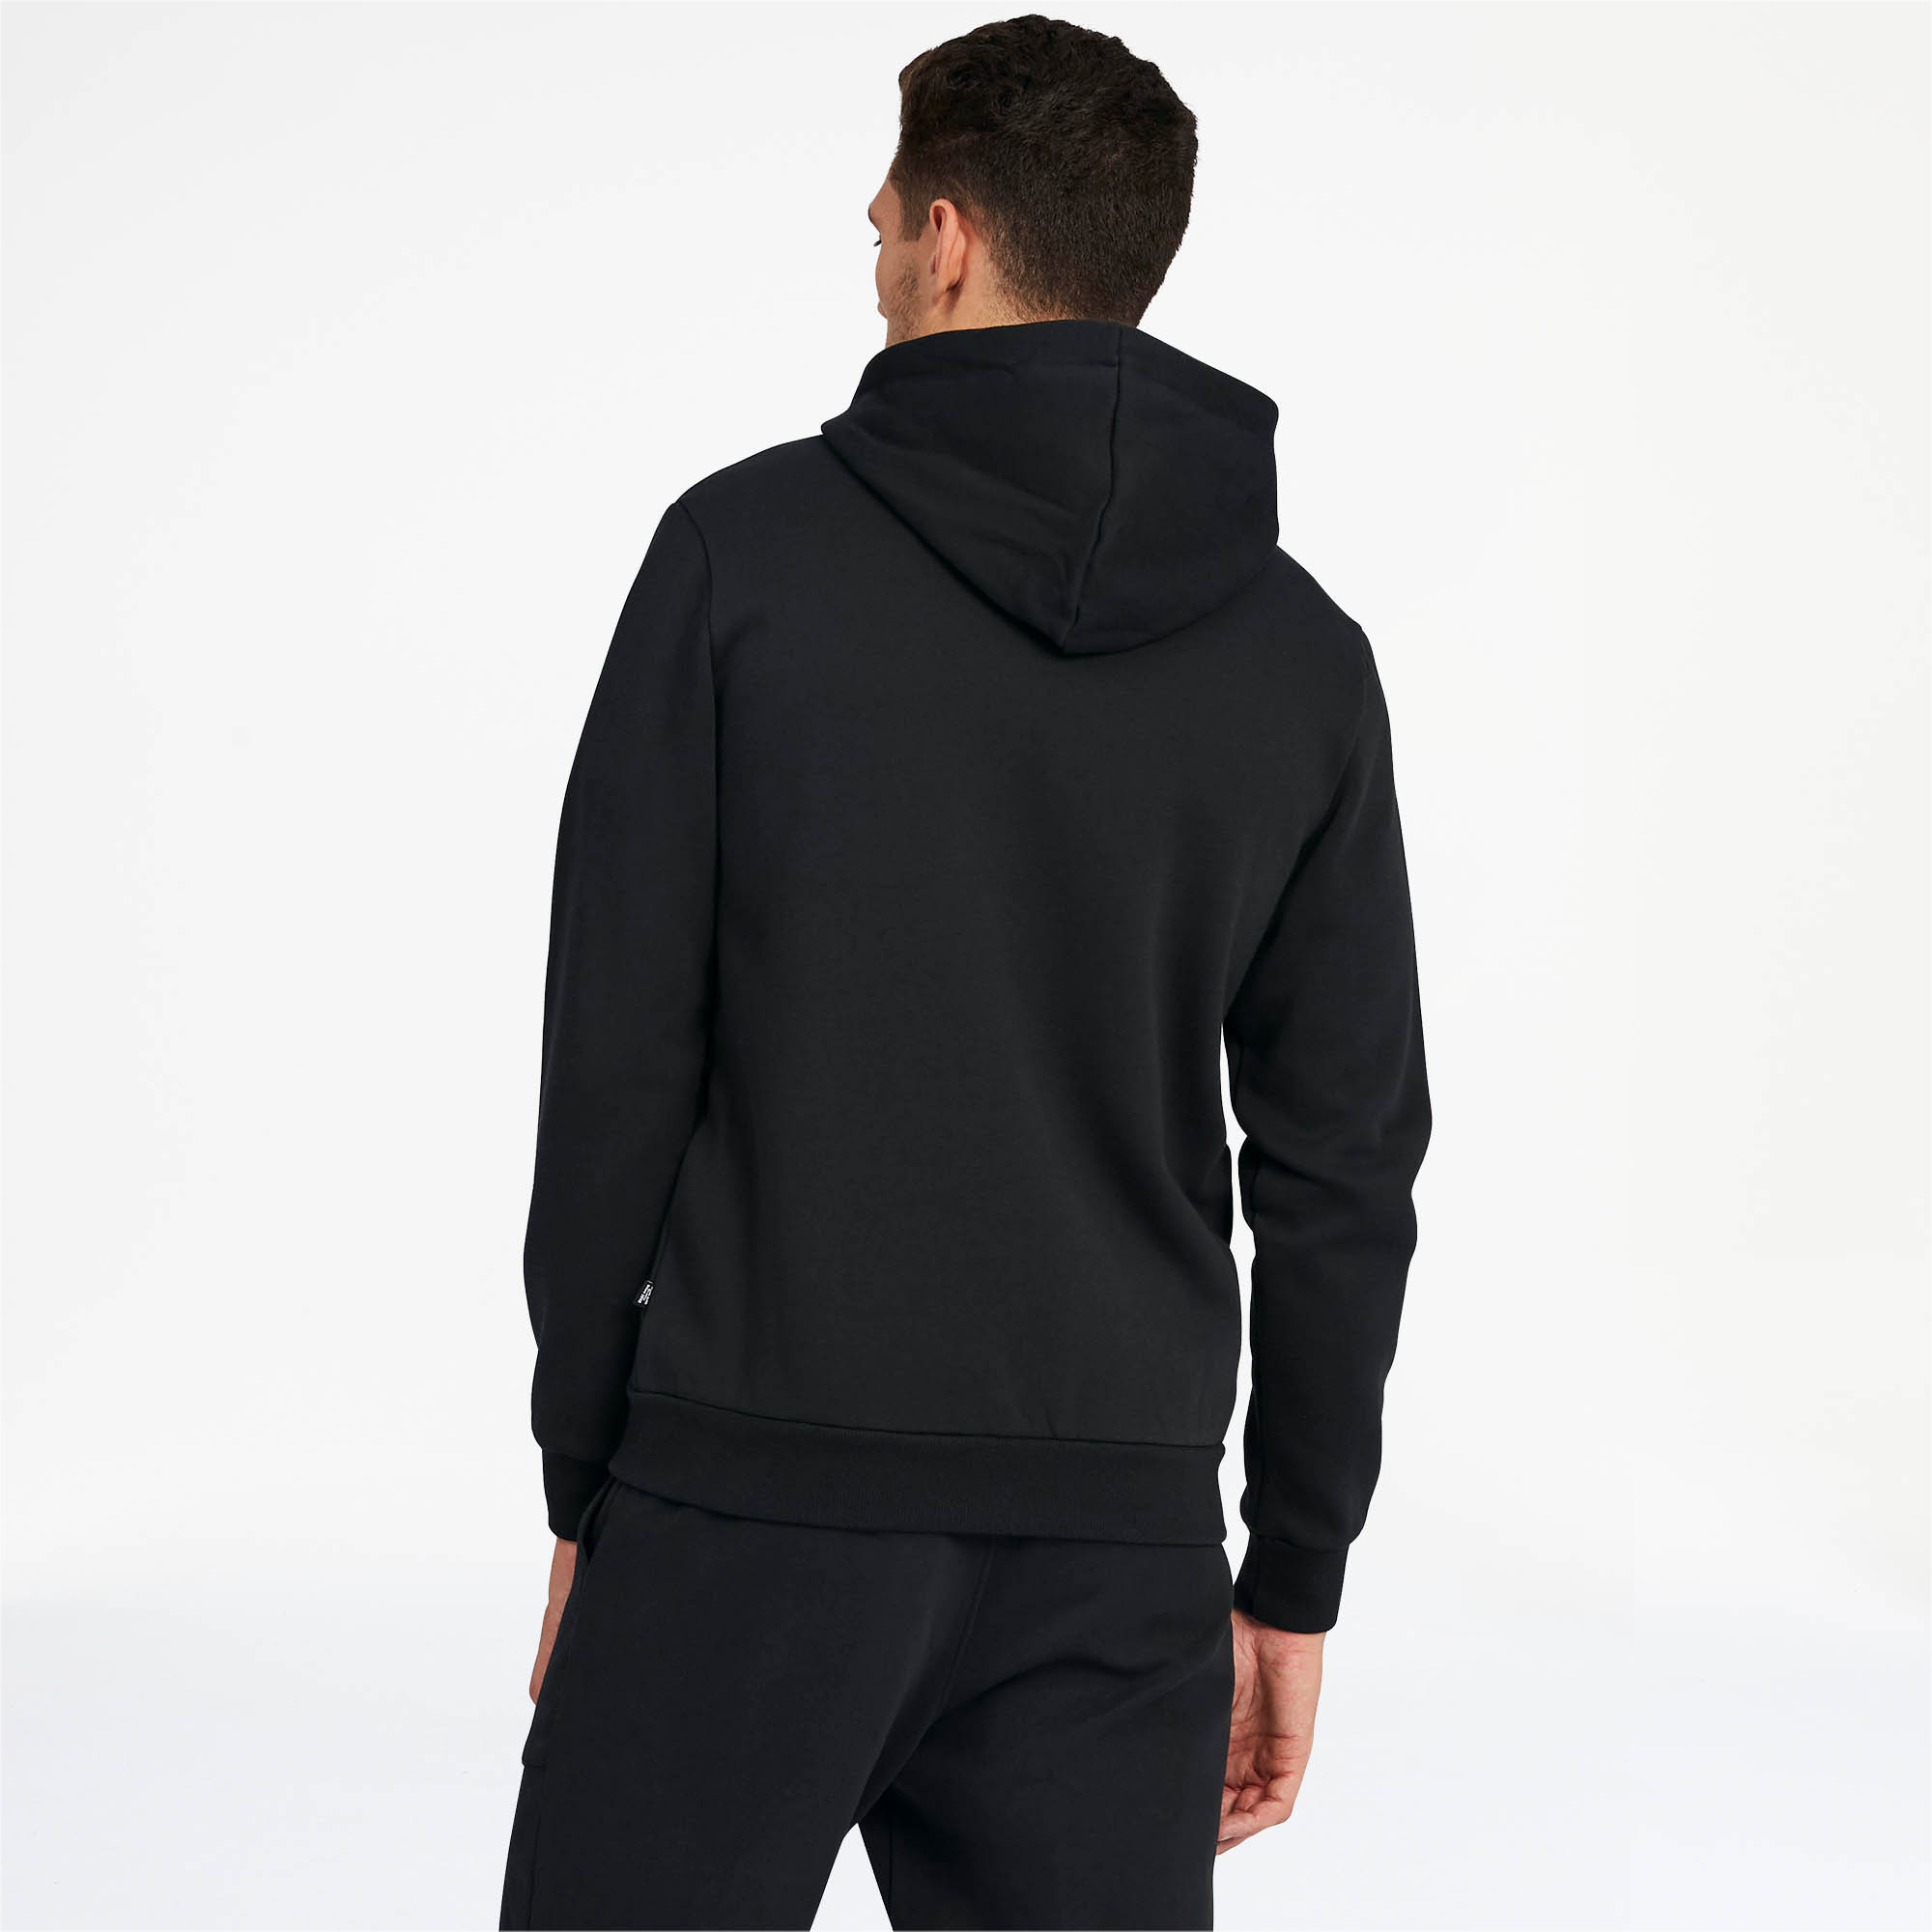 PUMA-Essentials-Men-039-s-Hooded-Fleece-Jacket-Men-Sweat-Basics thumbnail 5